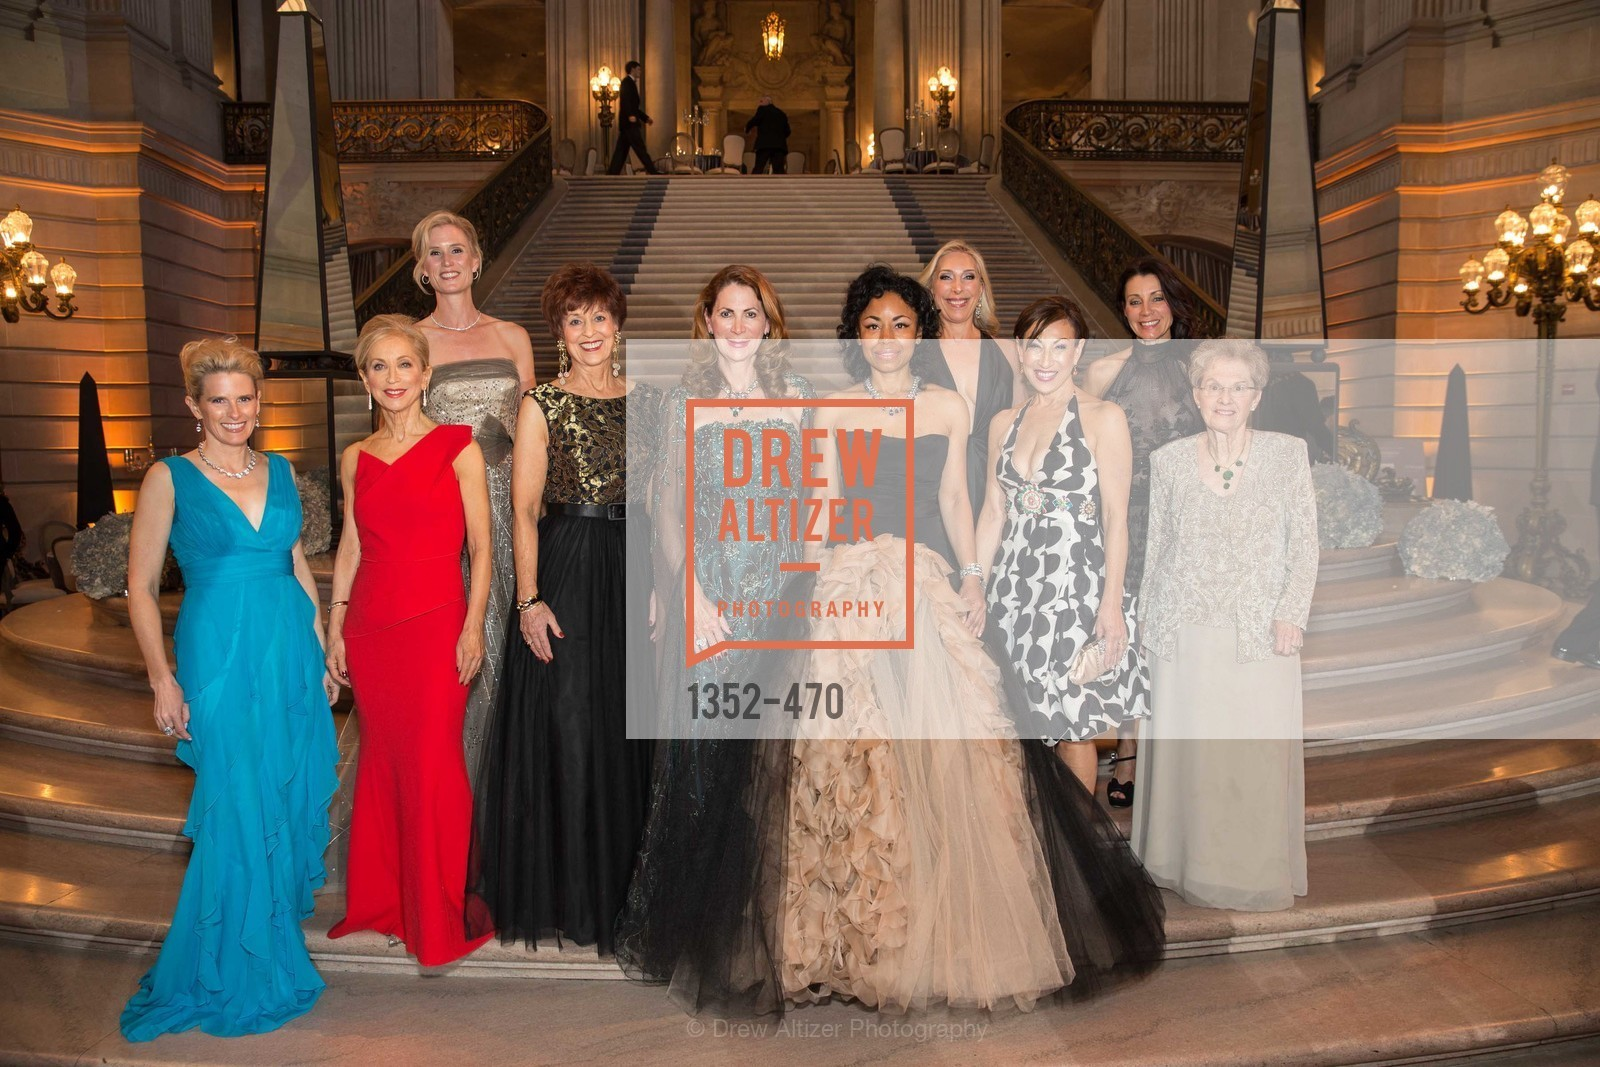 Marie Hurabiell, Shelley Gordon, Alison Mauze, Suzanne Thornton, Patricia Ferrin Loucks, Tanya Powell, Betsy Linder, Cathy Goodman, Debra Taylor, SAN FRANCISCO BALLET Opening Night Gala: PHENOMENAL - Arrivals, US. SF City Hall, January 22nd, 2014,Drew Altizer, Drew Altizer Photography, full-service event agency, private events, San Francisco photographer, photographer California